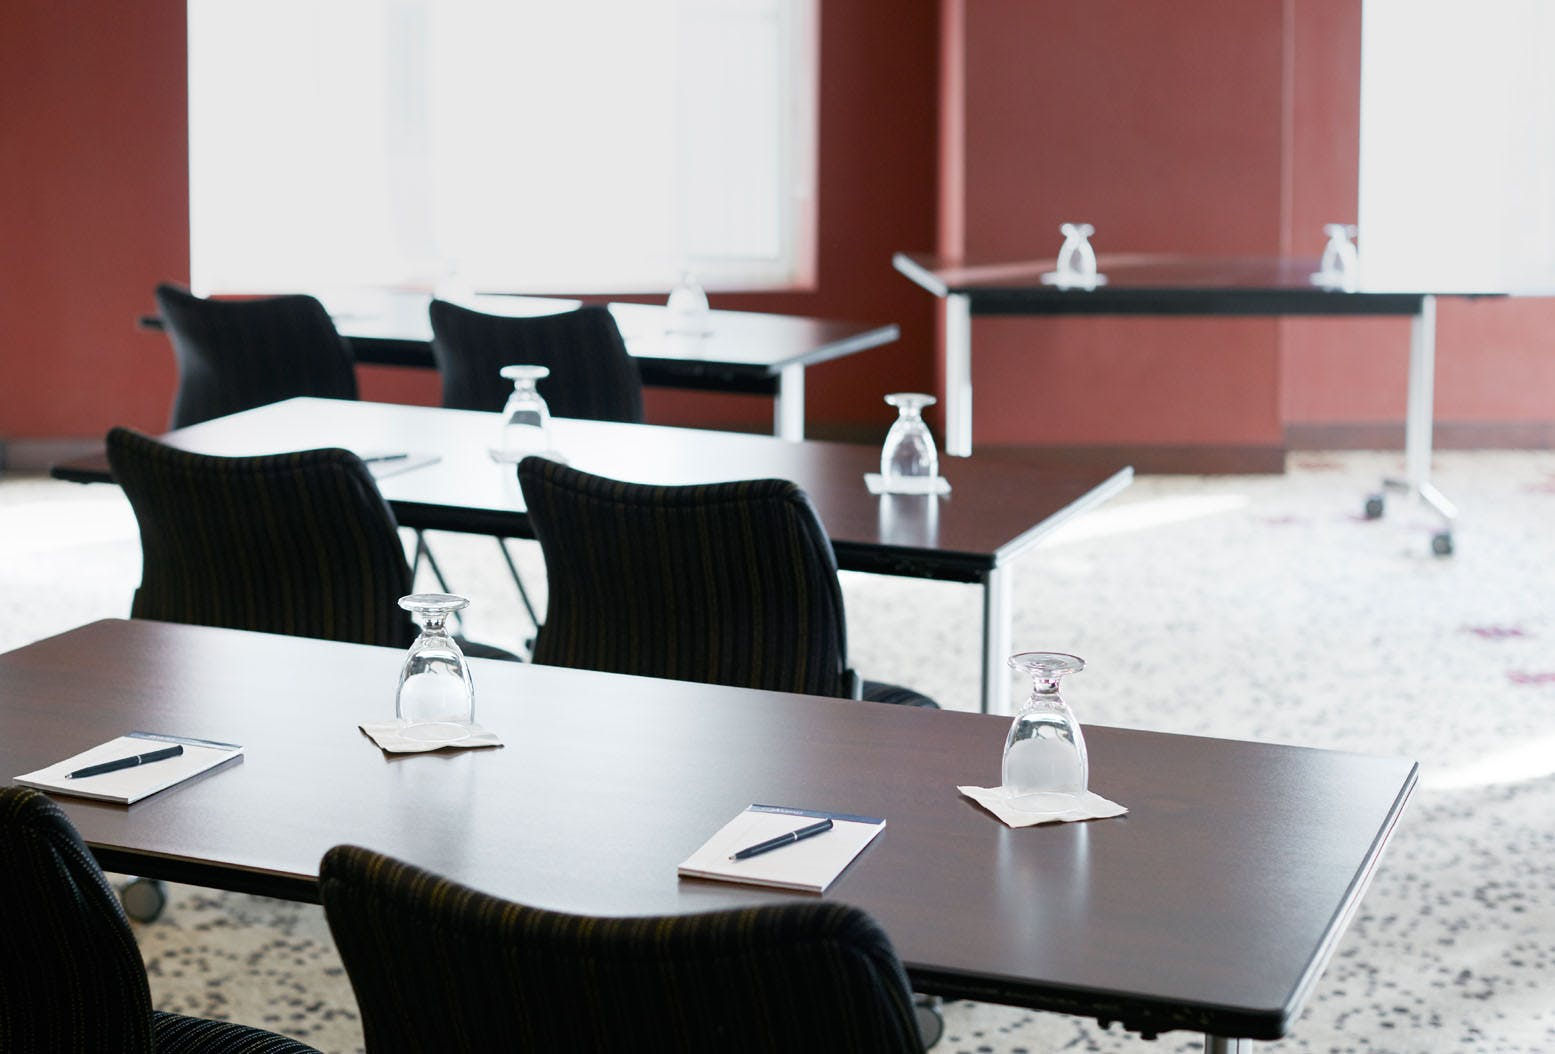 Meeting Room in Club Quarters Hotel in Washington, DC